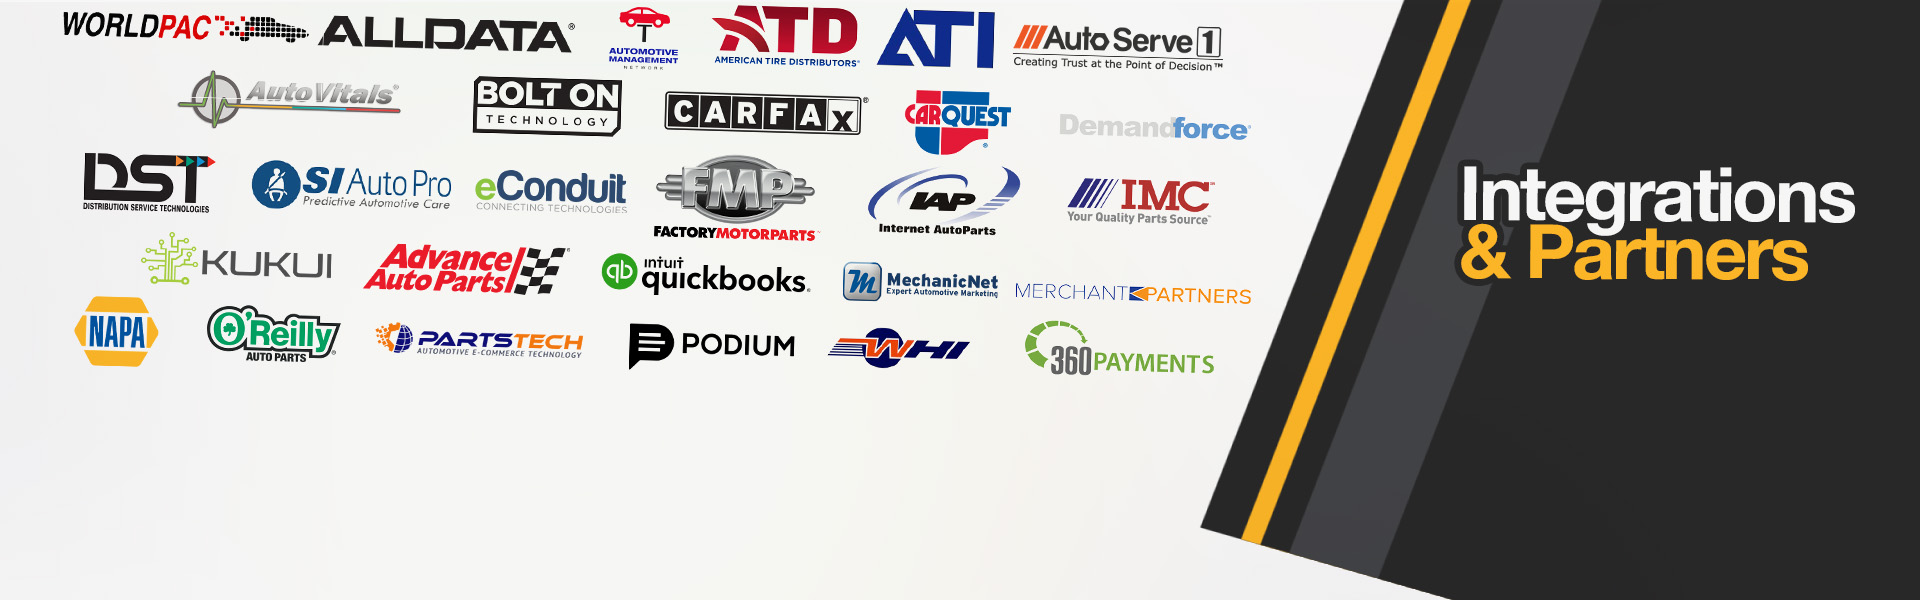 MaxxTraxx is a Best Auto Repair Software choice for 2018! - Home